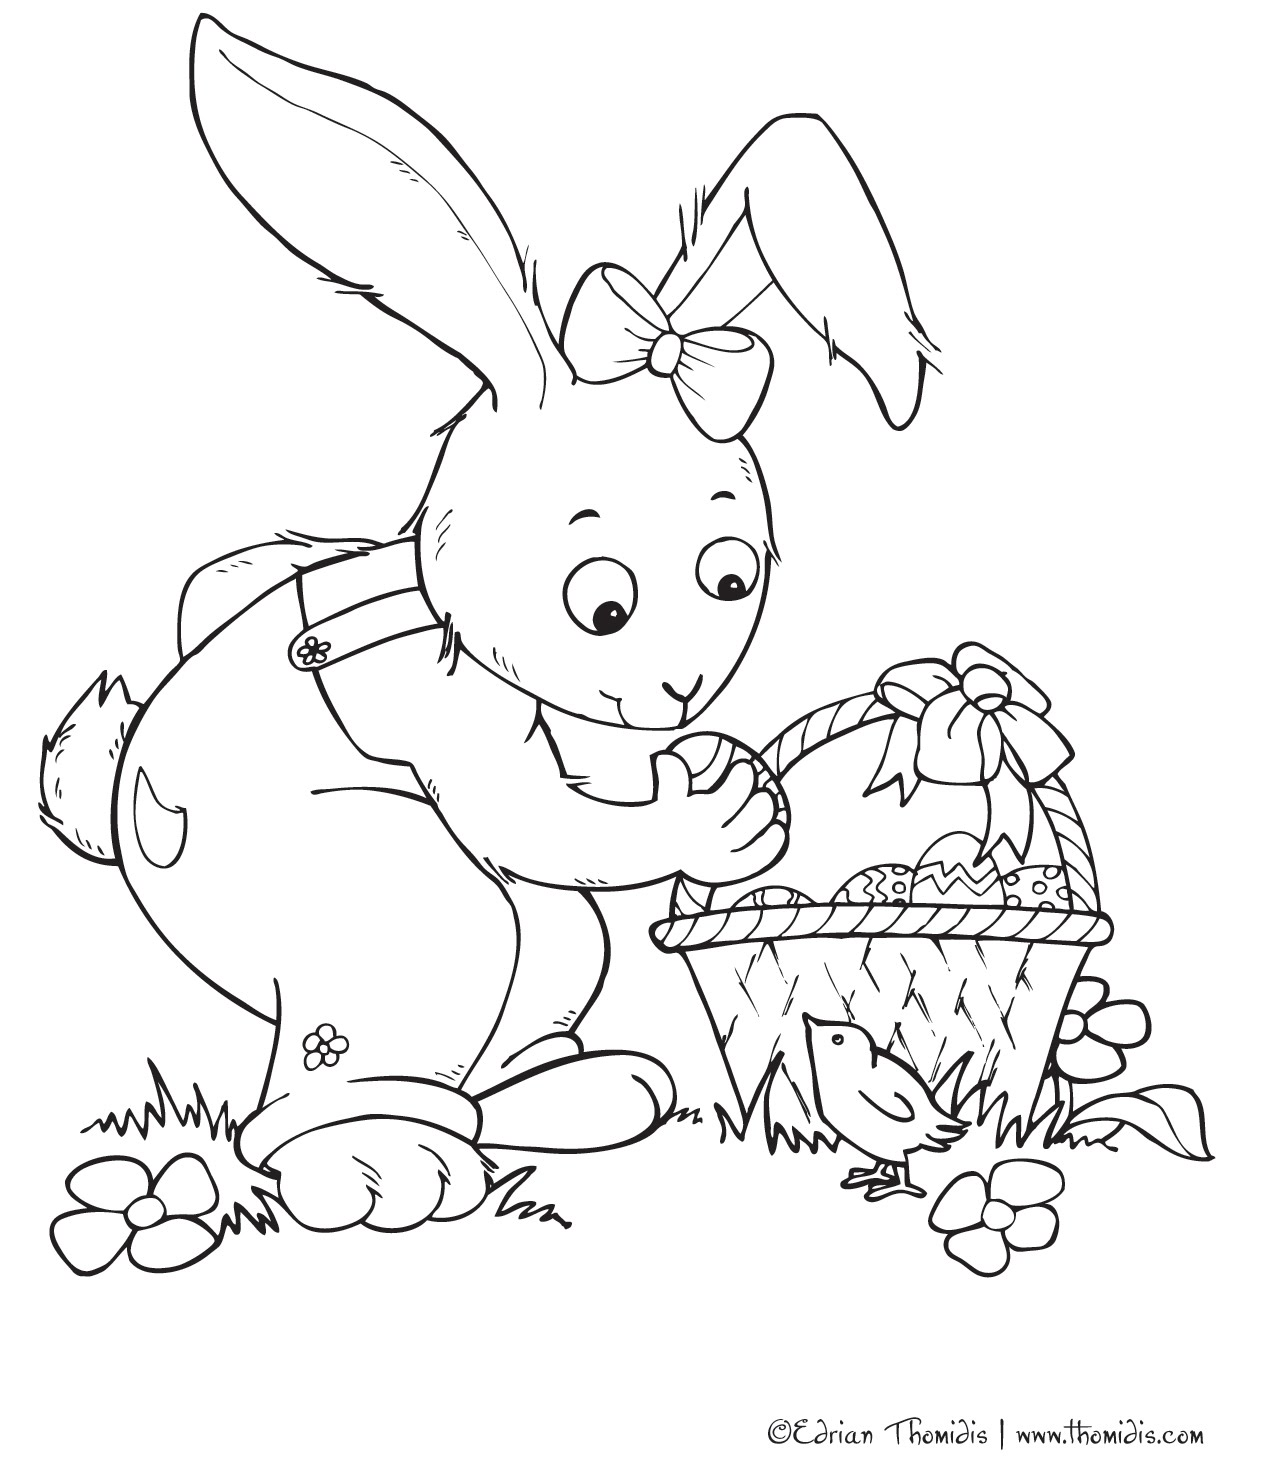 cute rabbit coloring pages - cute bunny coloring pages free printable pictures